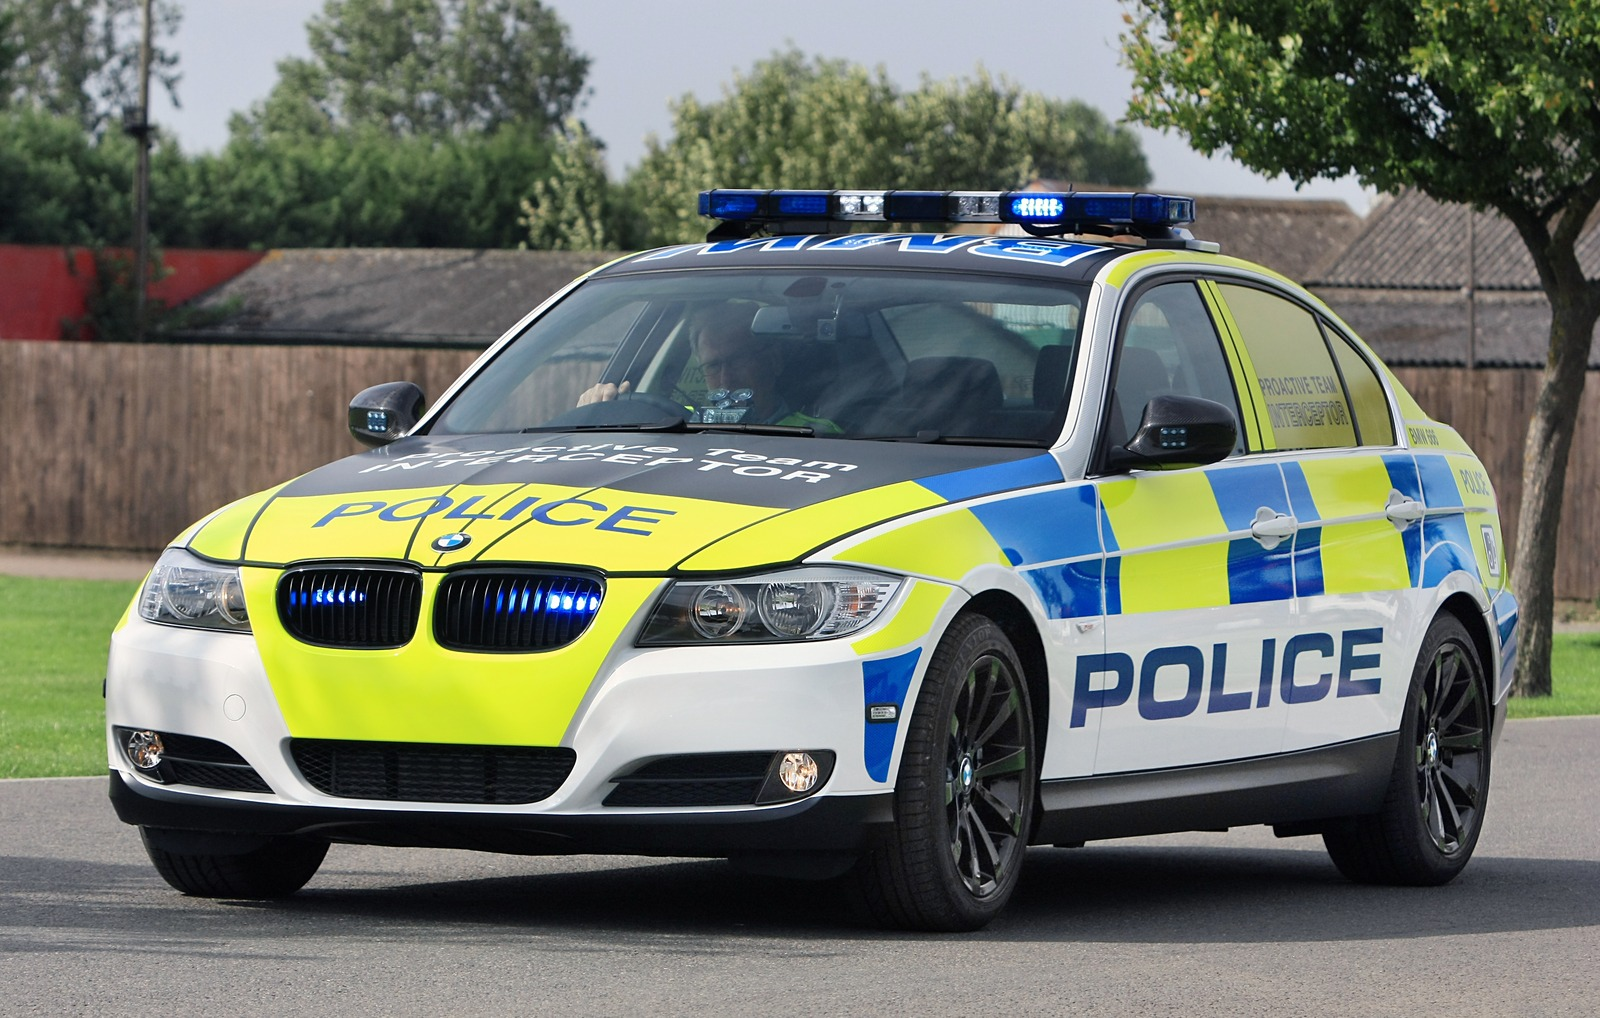 2011 Bmw Uk Police Vehicles 100327950 H Jpg